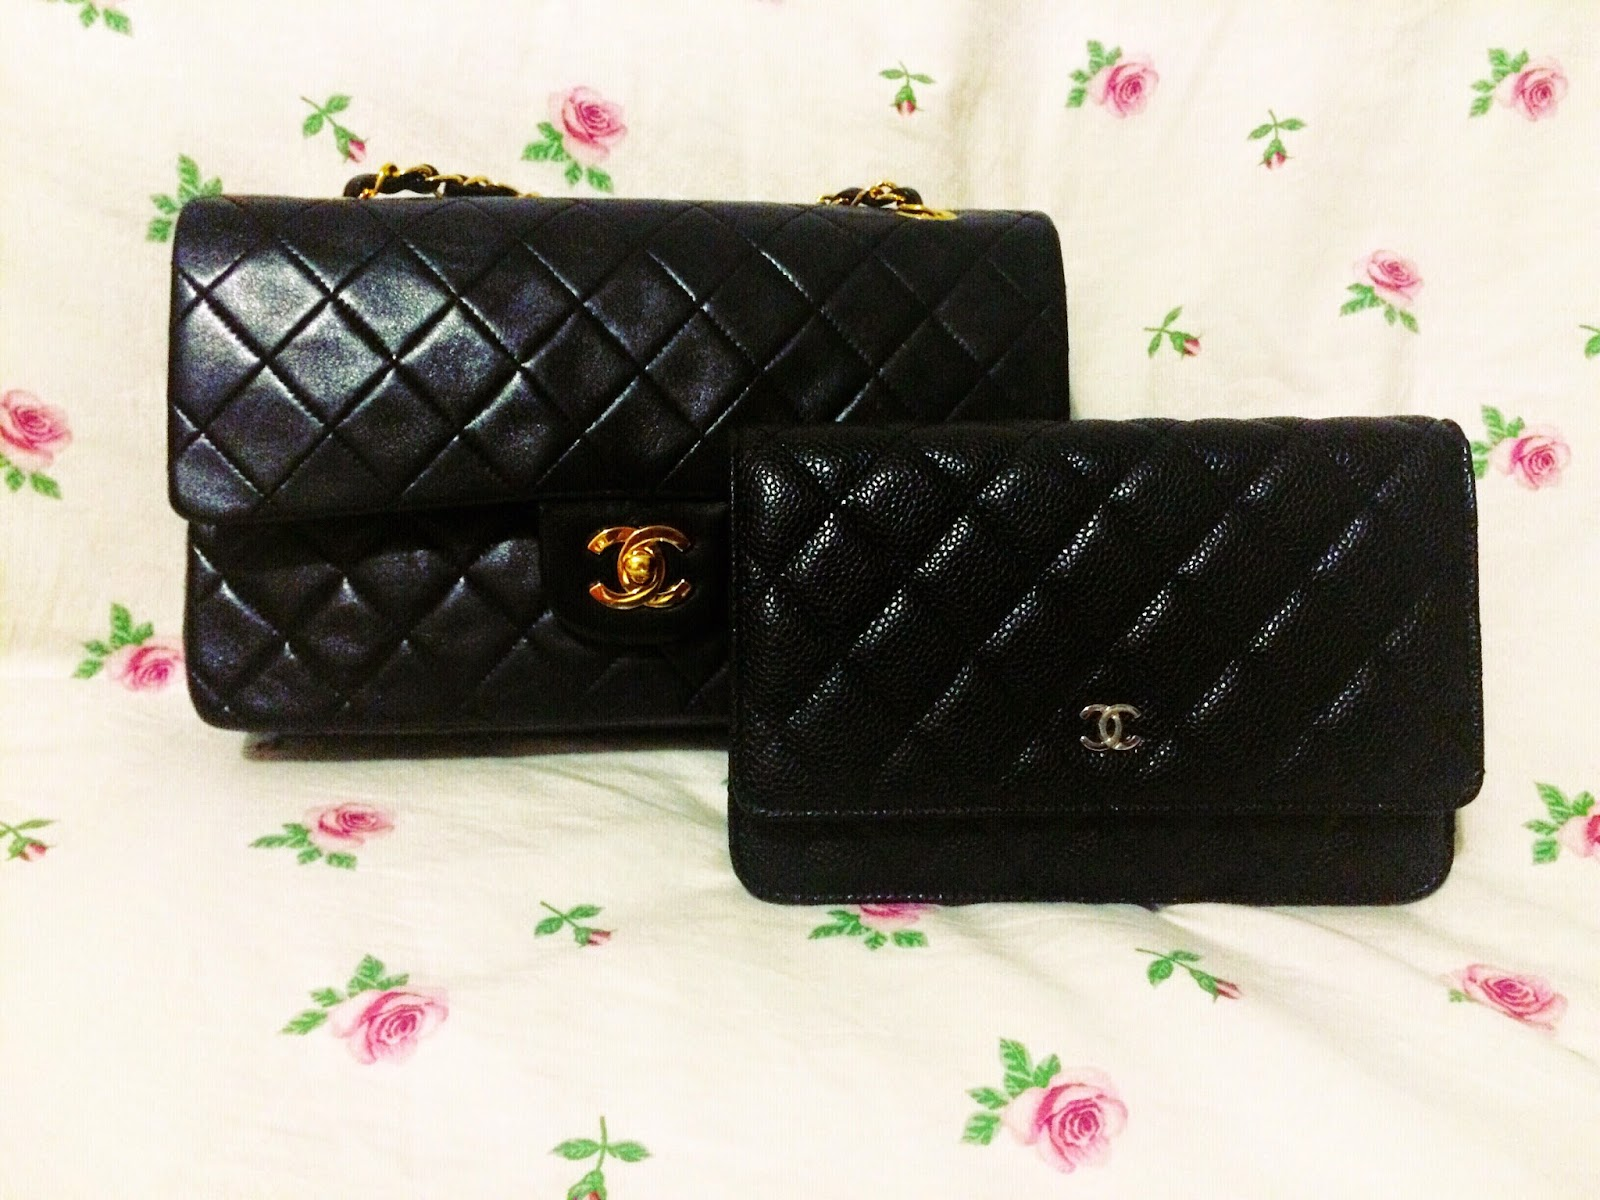 16932485afca The measurements on it is 7.6 inches in width, 4.8 inches in height, 1.4  inches in depth, here is a comparison with my vintage Chanel medium large  classic ...